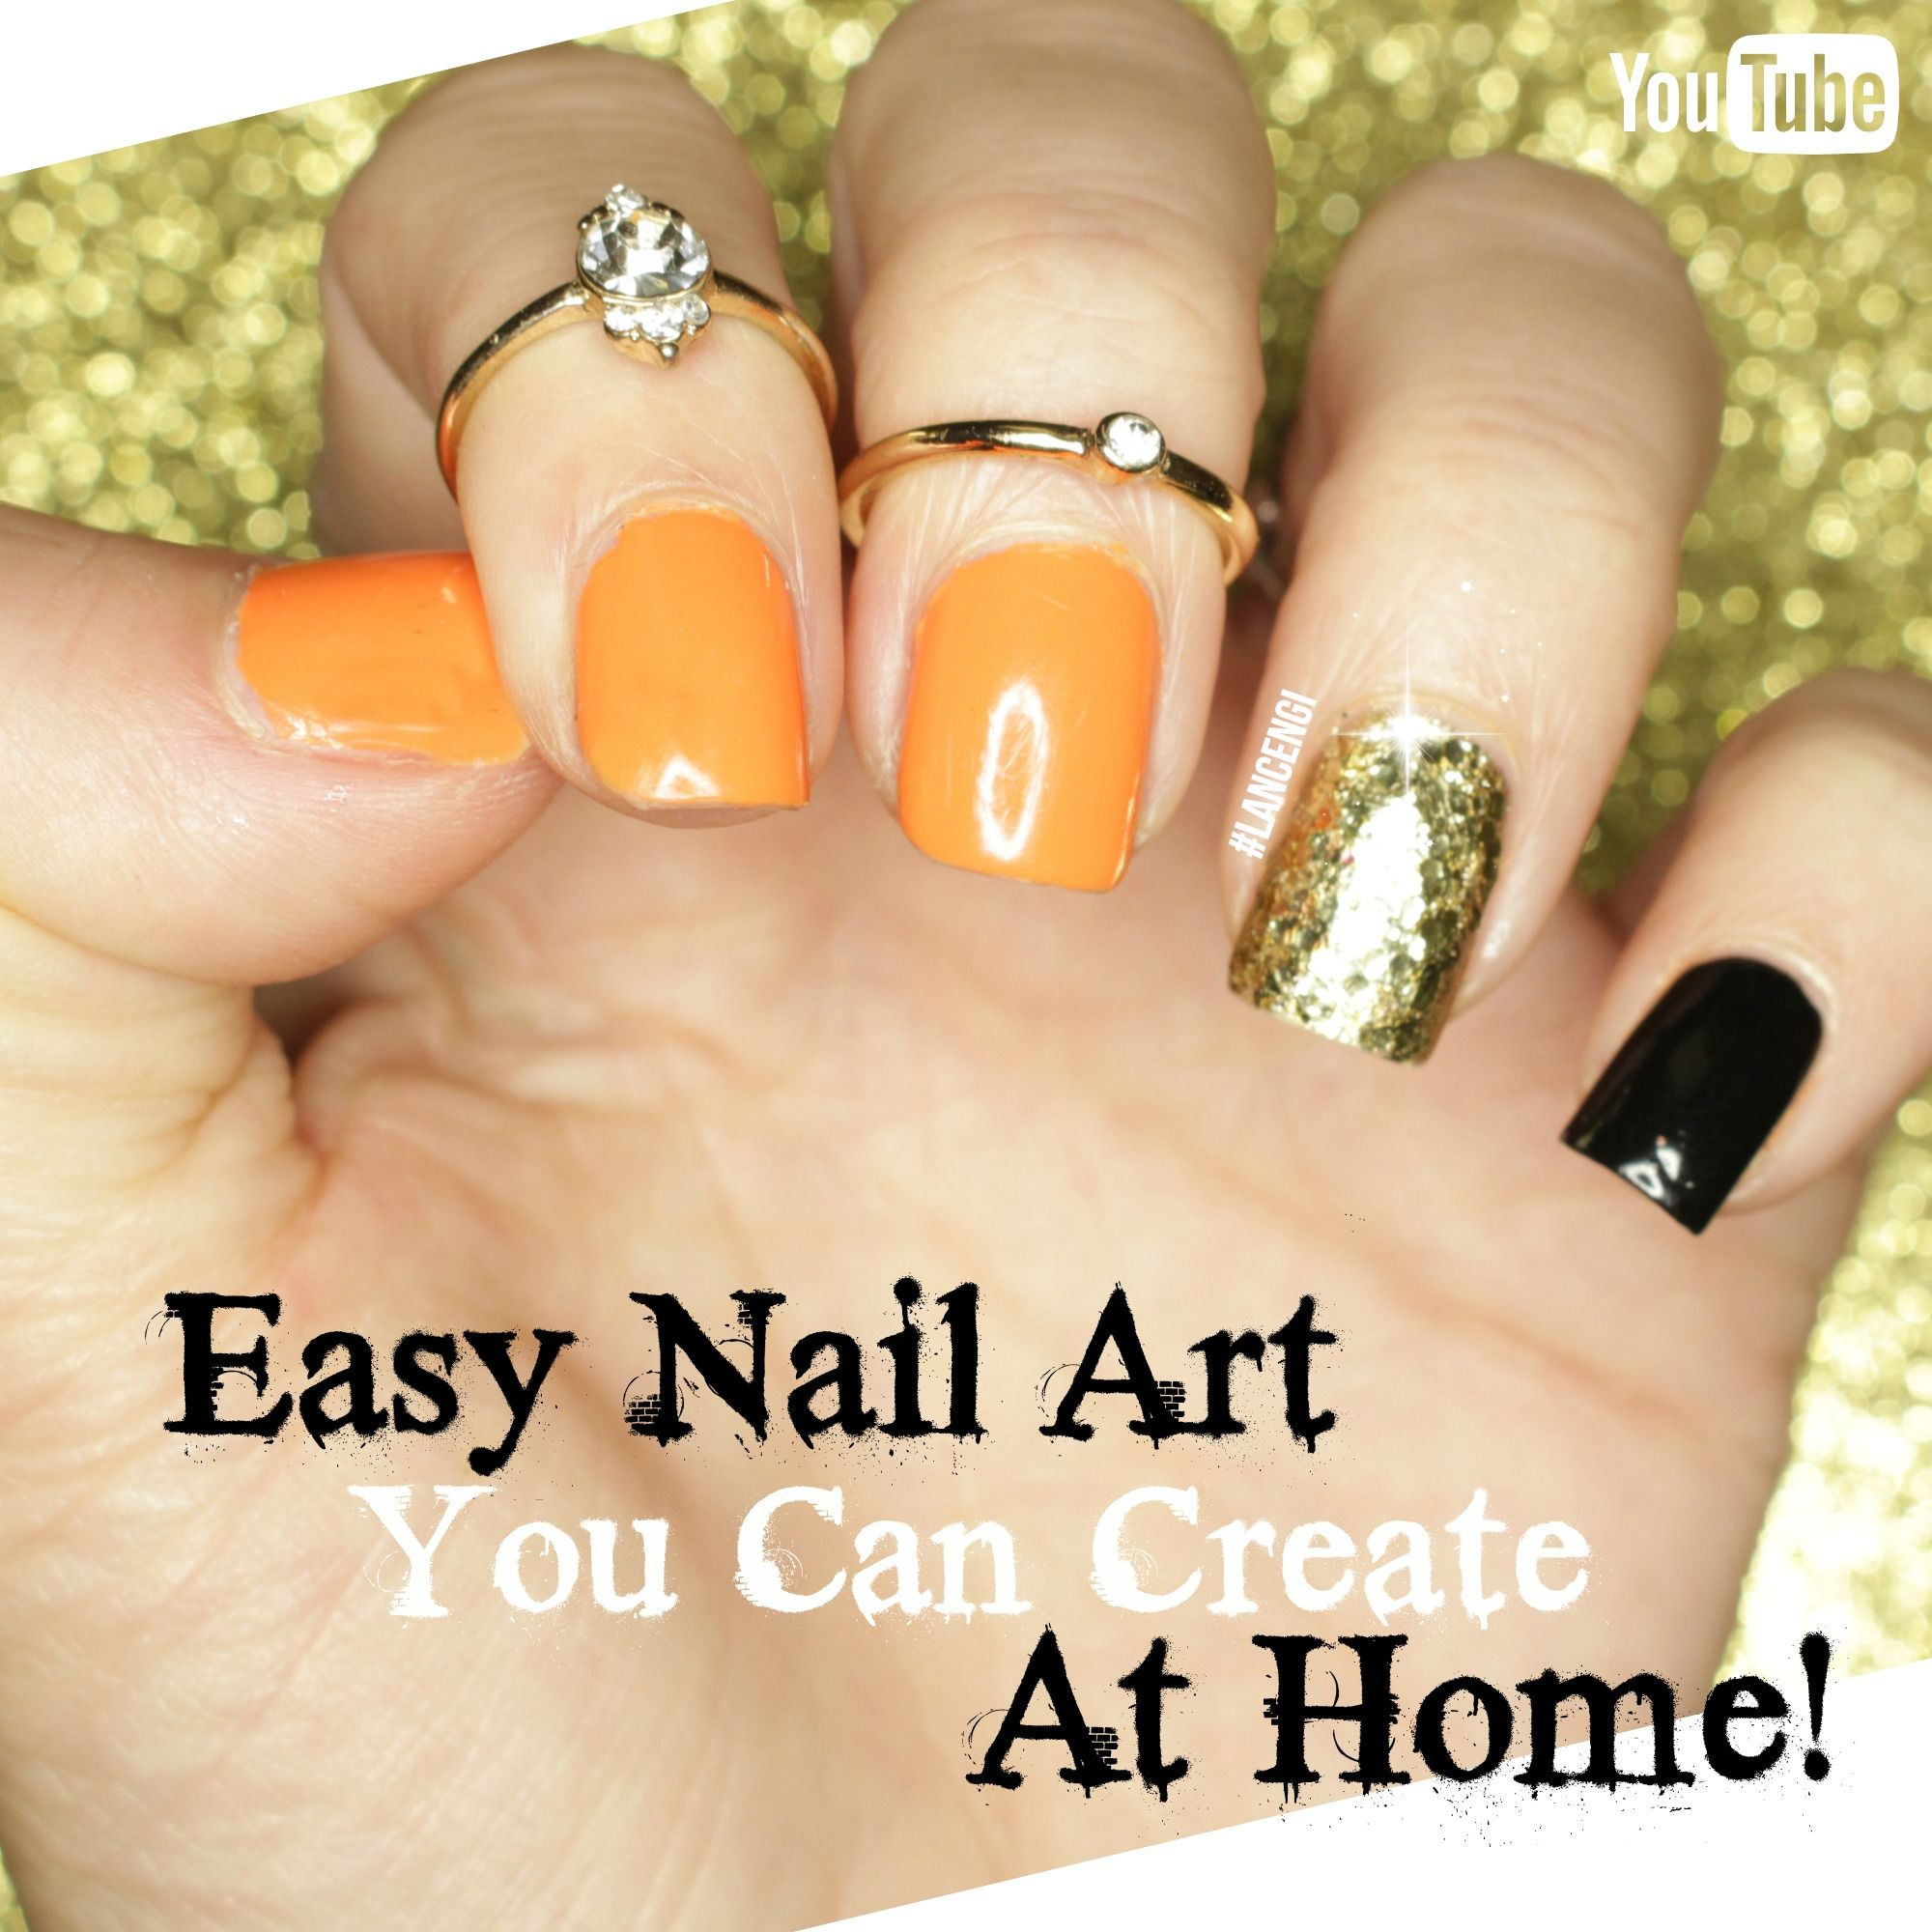 DIY Easy Halloween nail Art For beginners - Nail Art you can Actually DO at HOME!